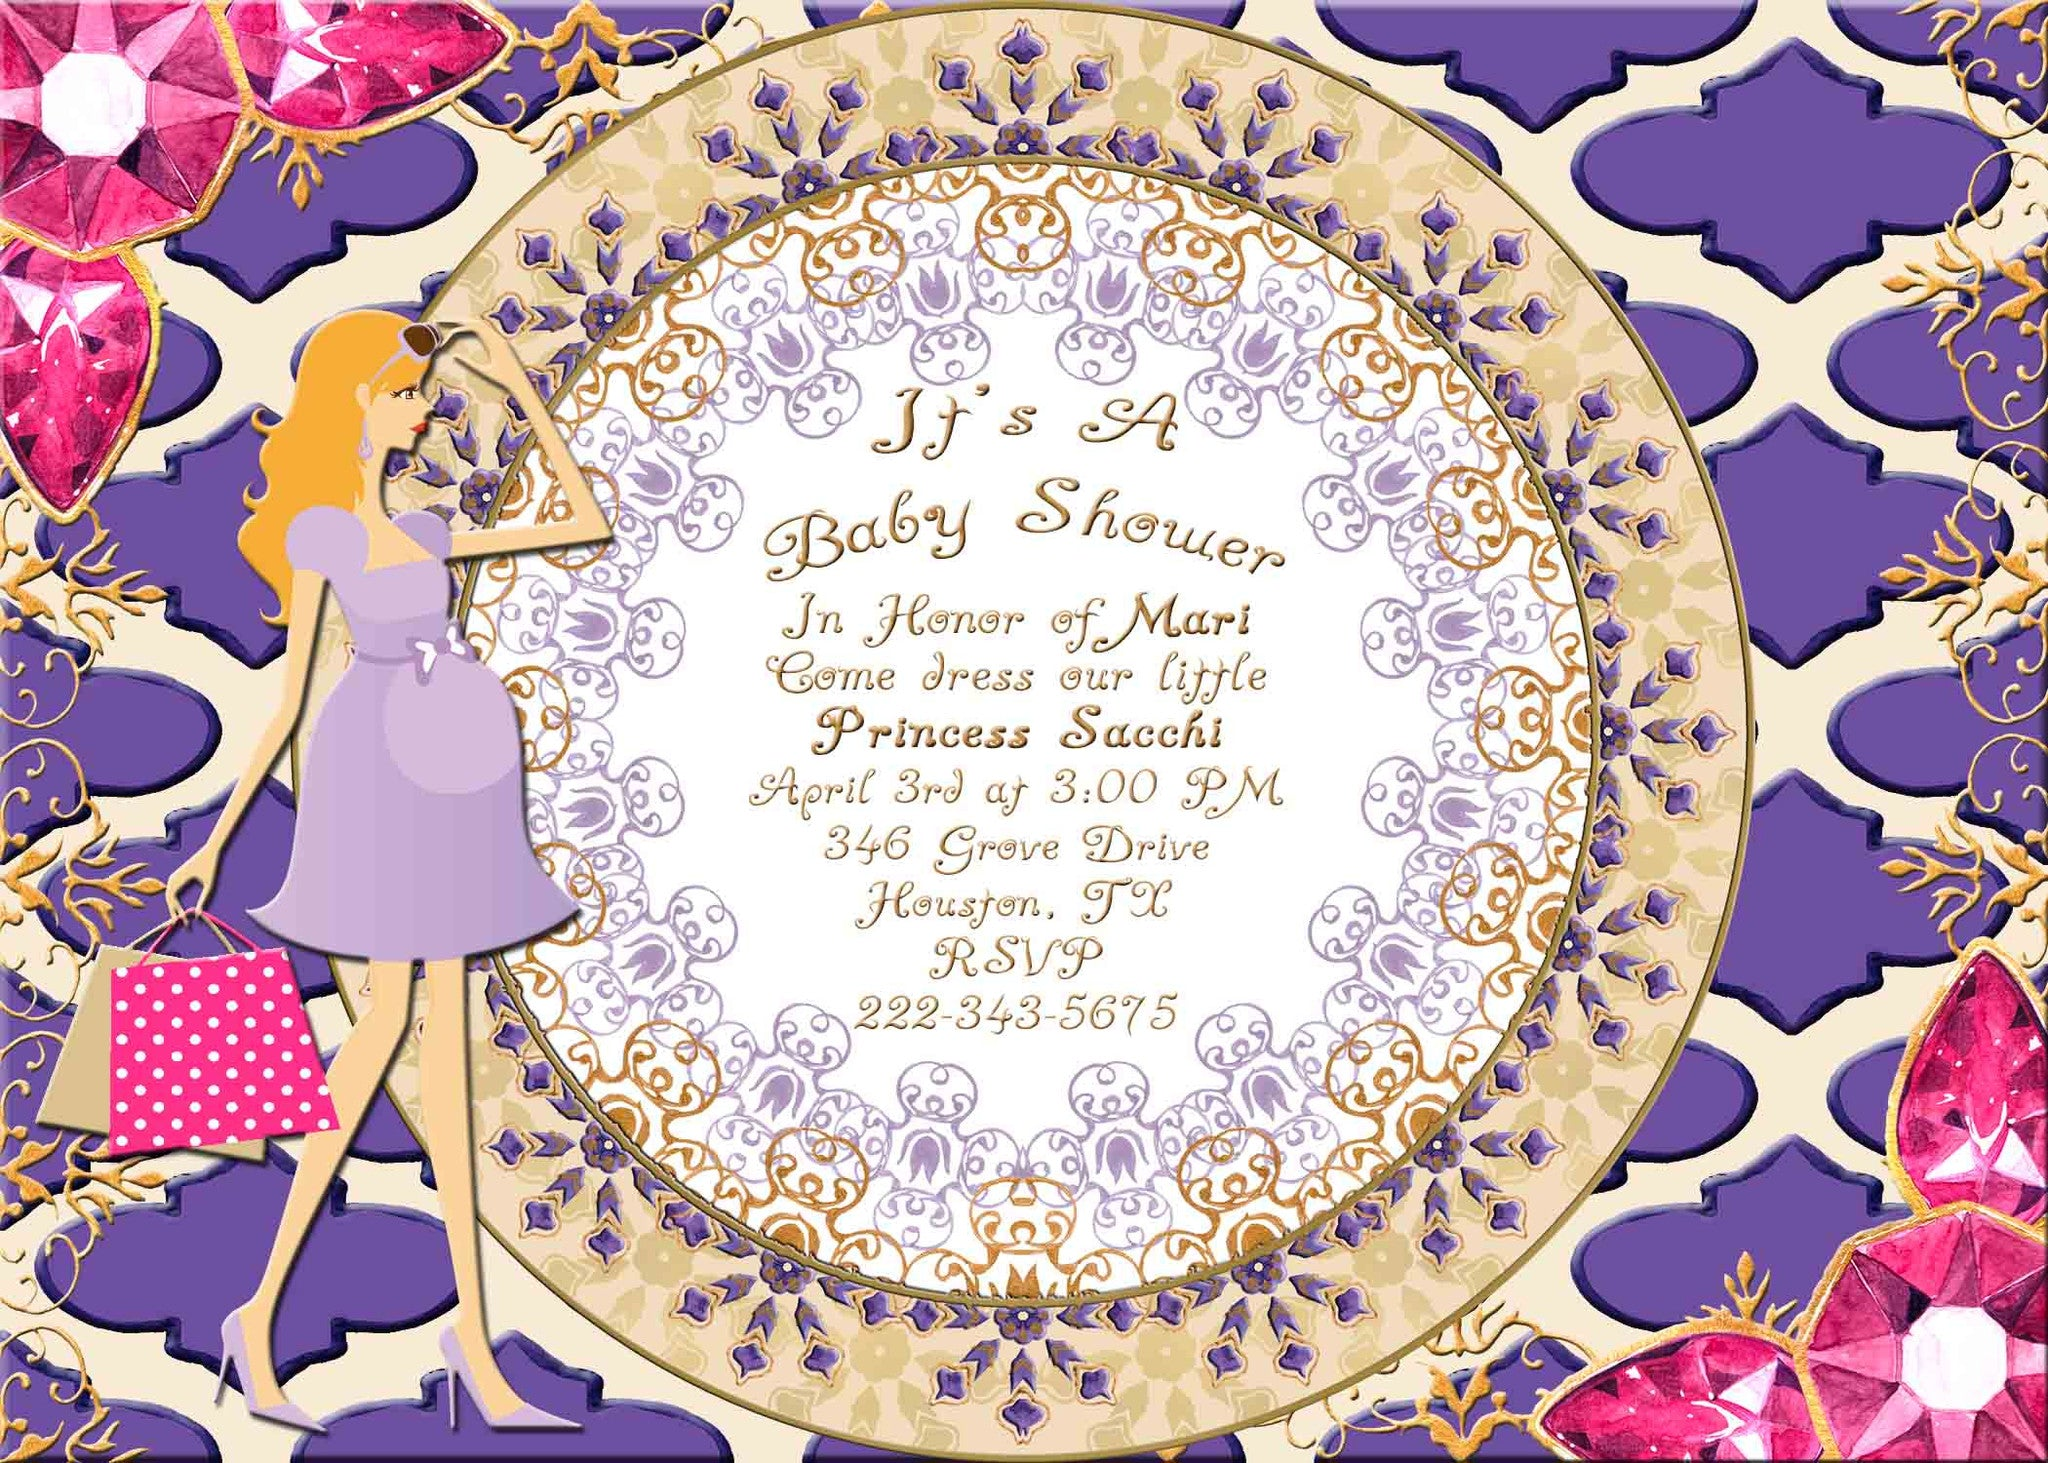 Moroccan Indian Jewels Blond Haired Pregnant Lady Baby Shower Invitation - Custom Printable - Invites and Delites